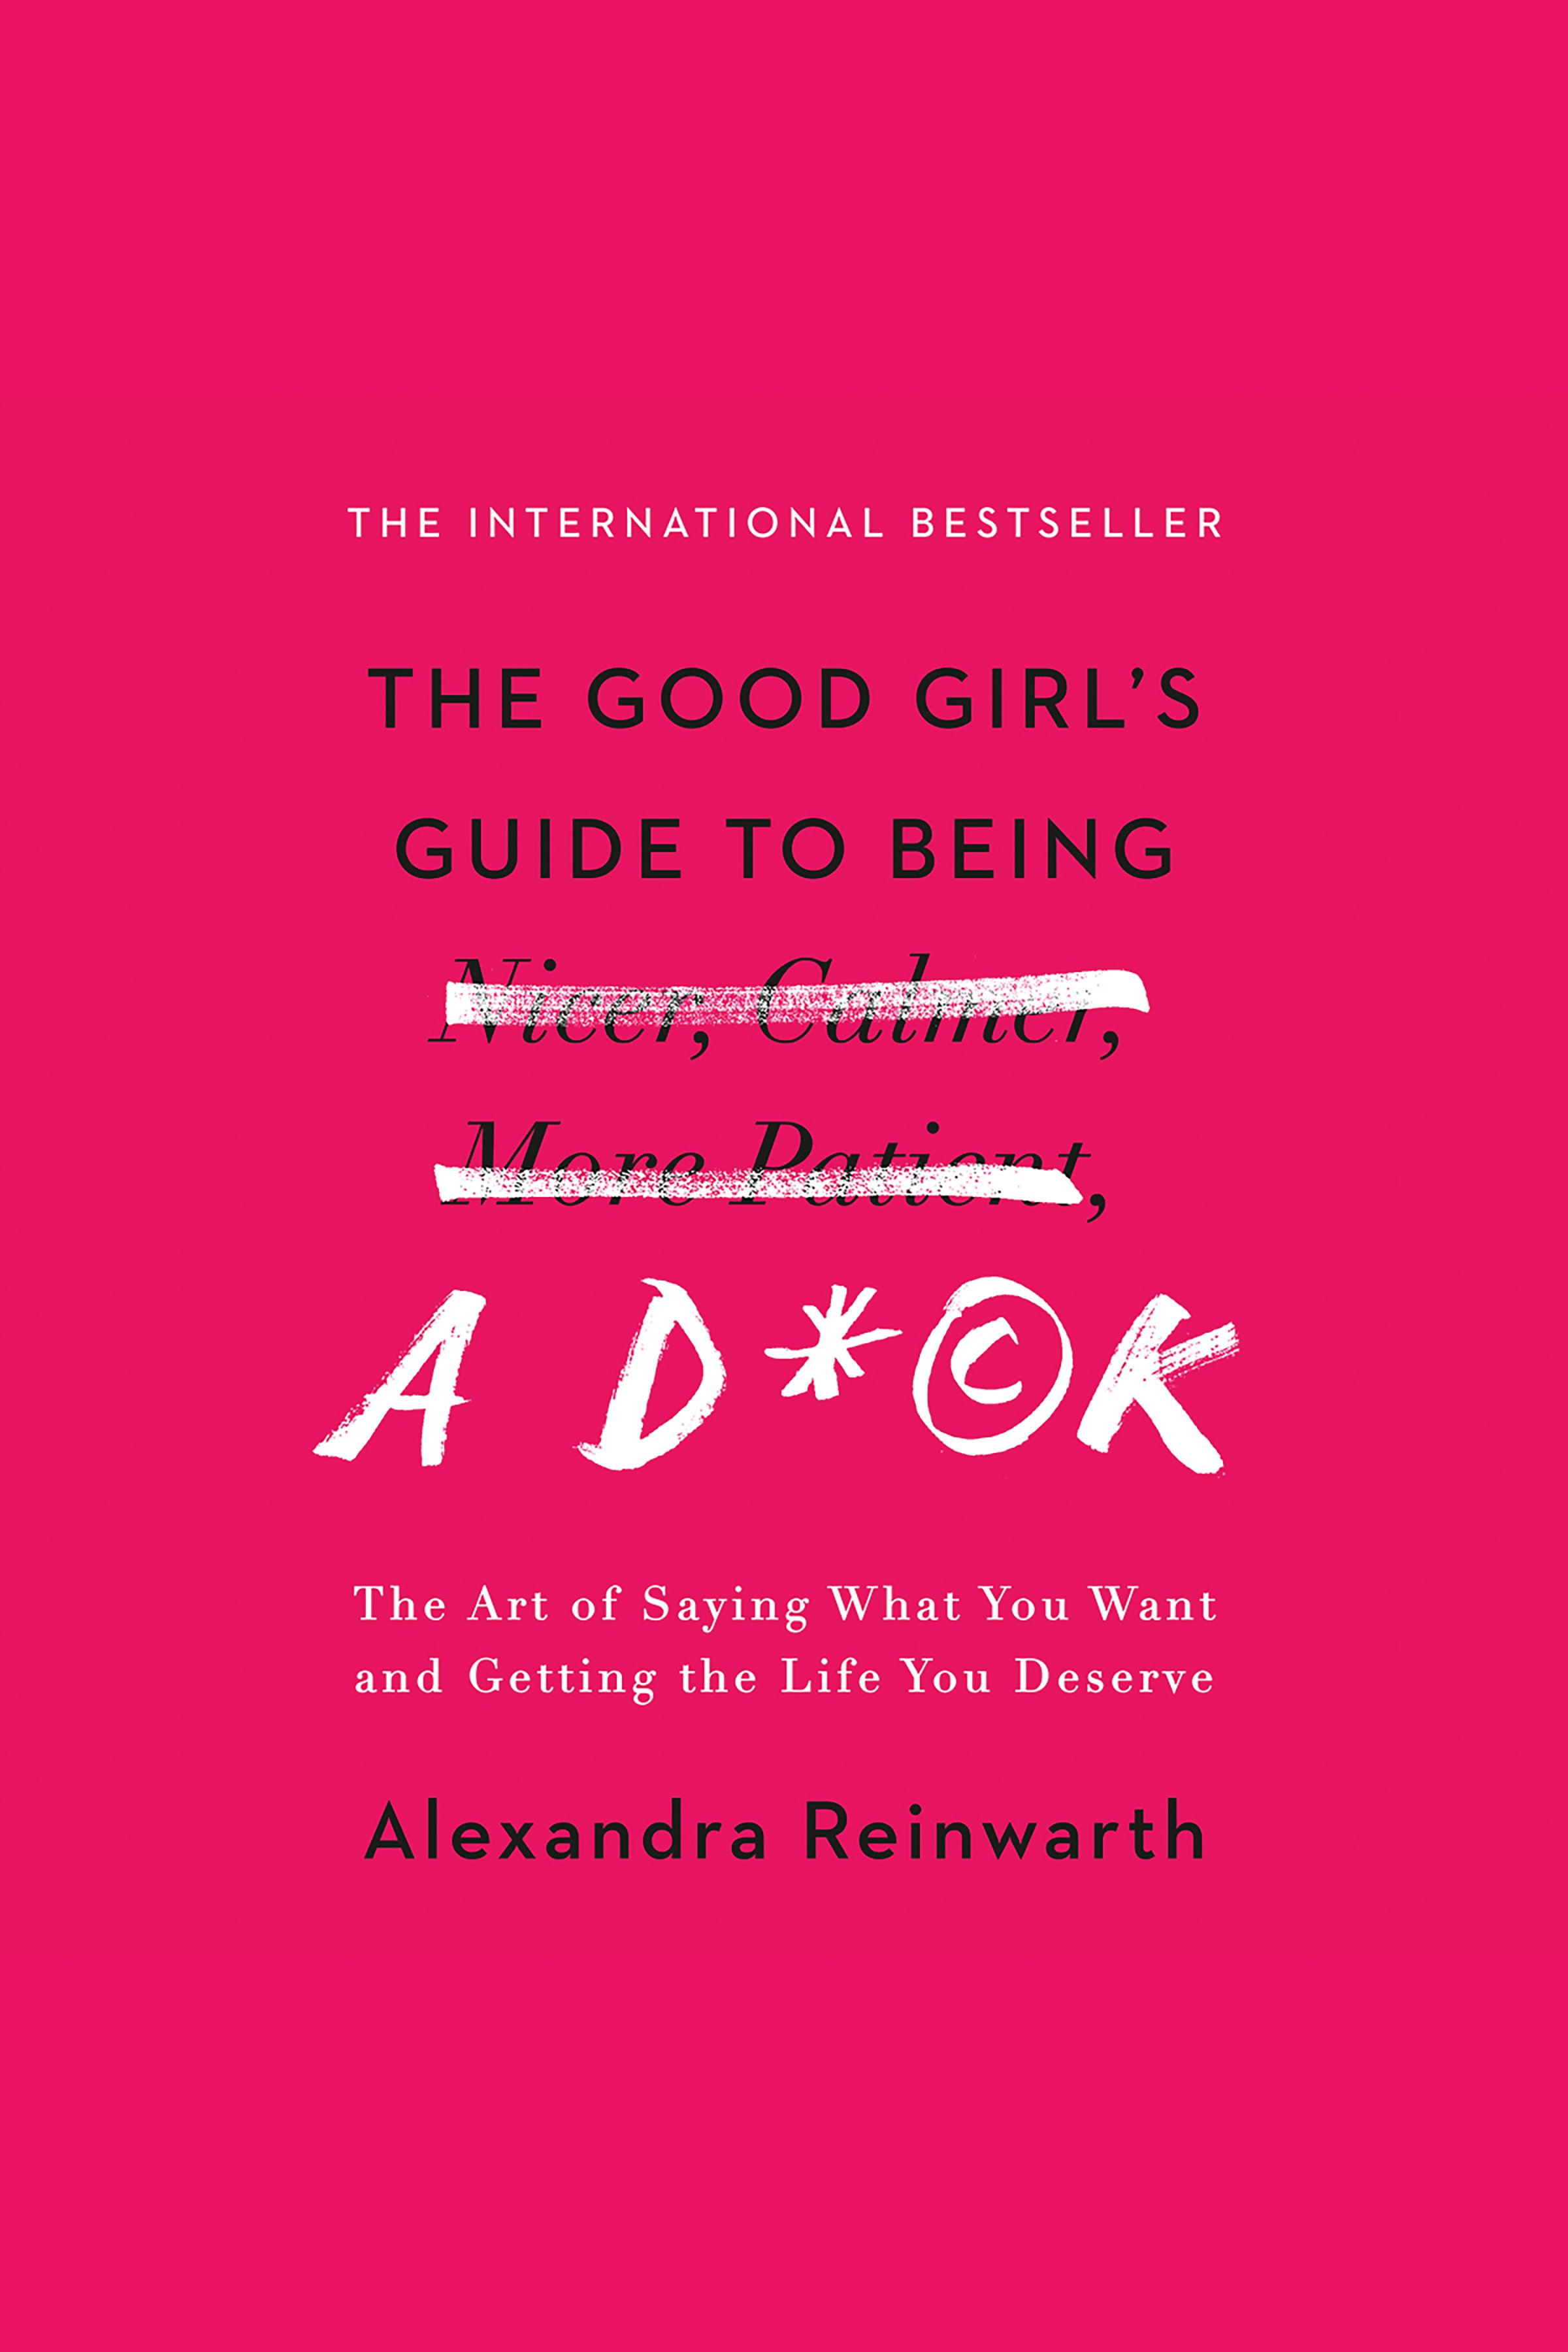 Good Girl's Guide to Being a D*ck, The The Art of Saying What You Want and Getting the Life You Deserve